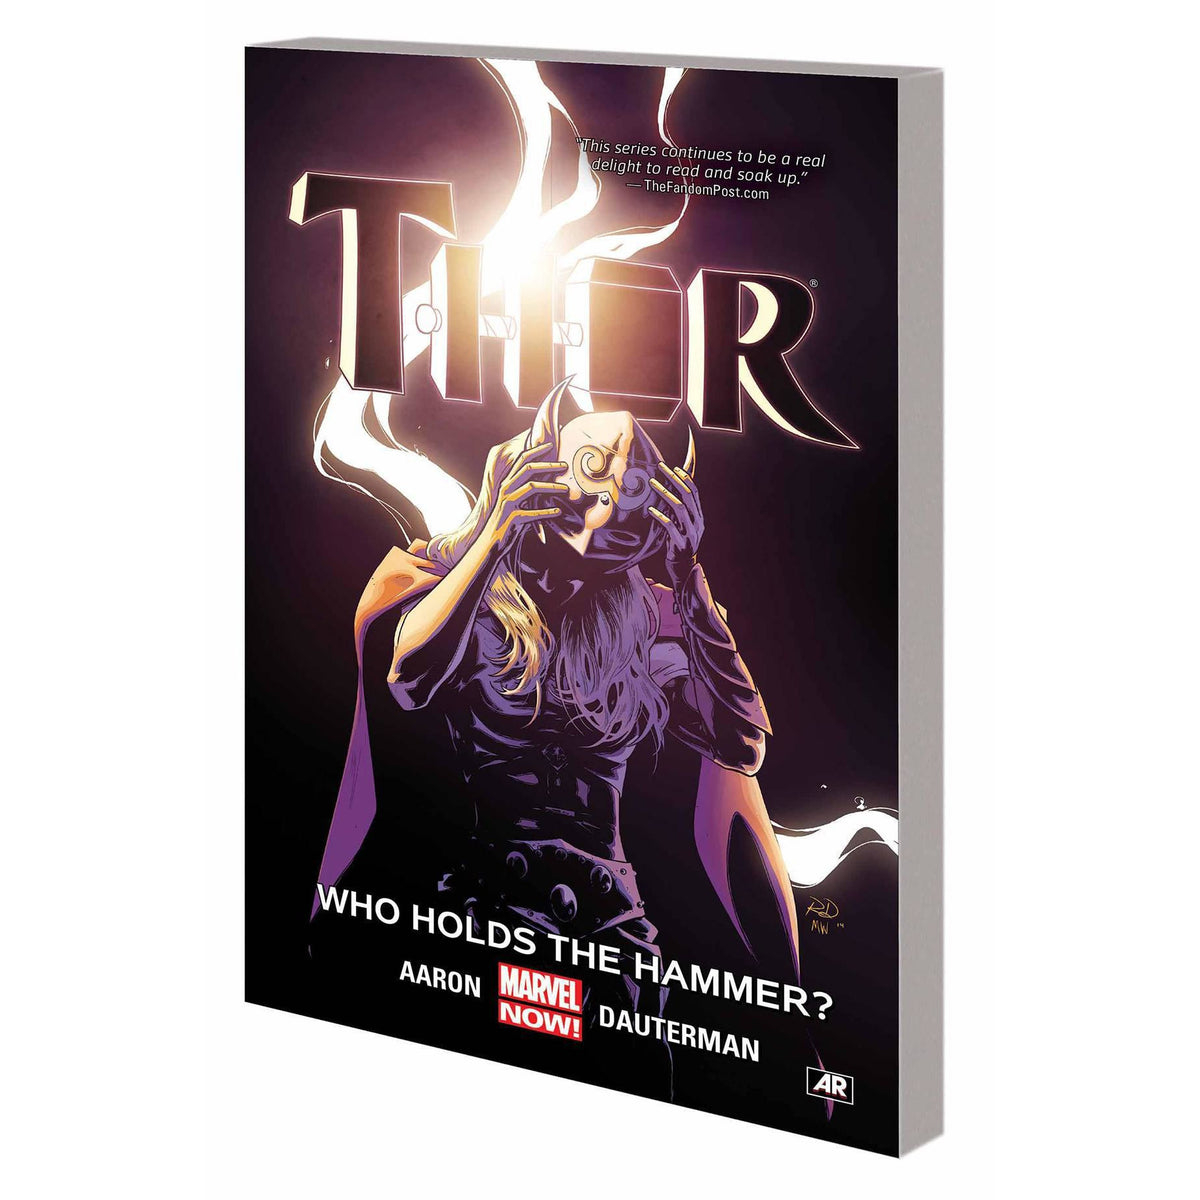 THOR VOLUME 02: WHO HOLDS THE HAMMER?